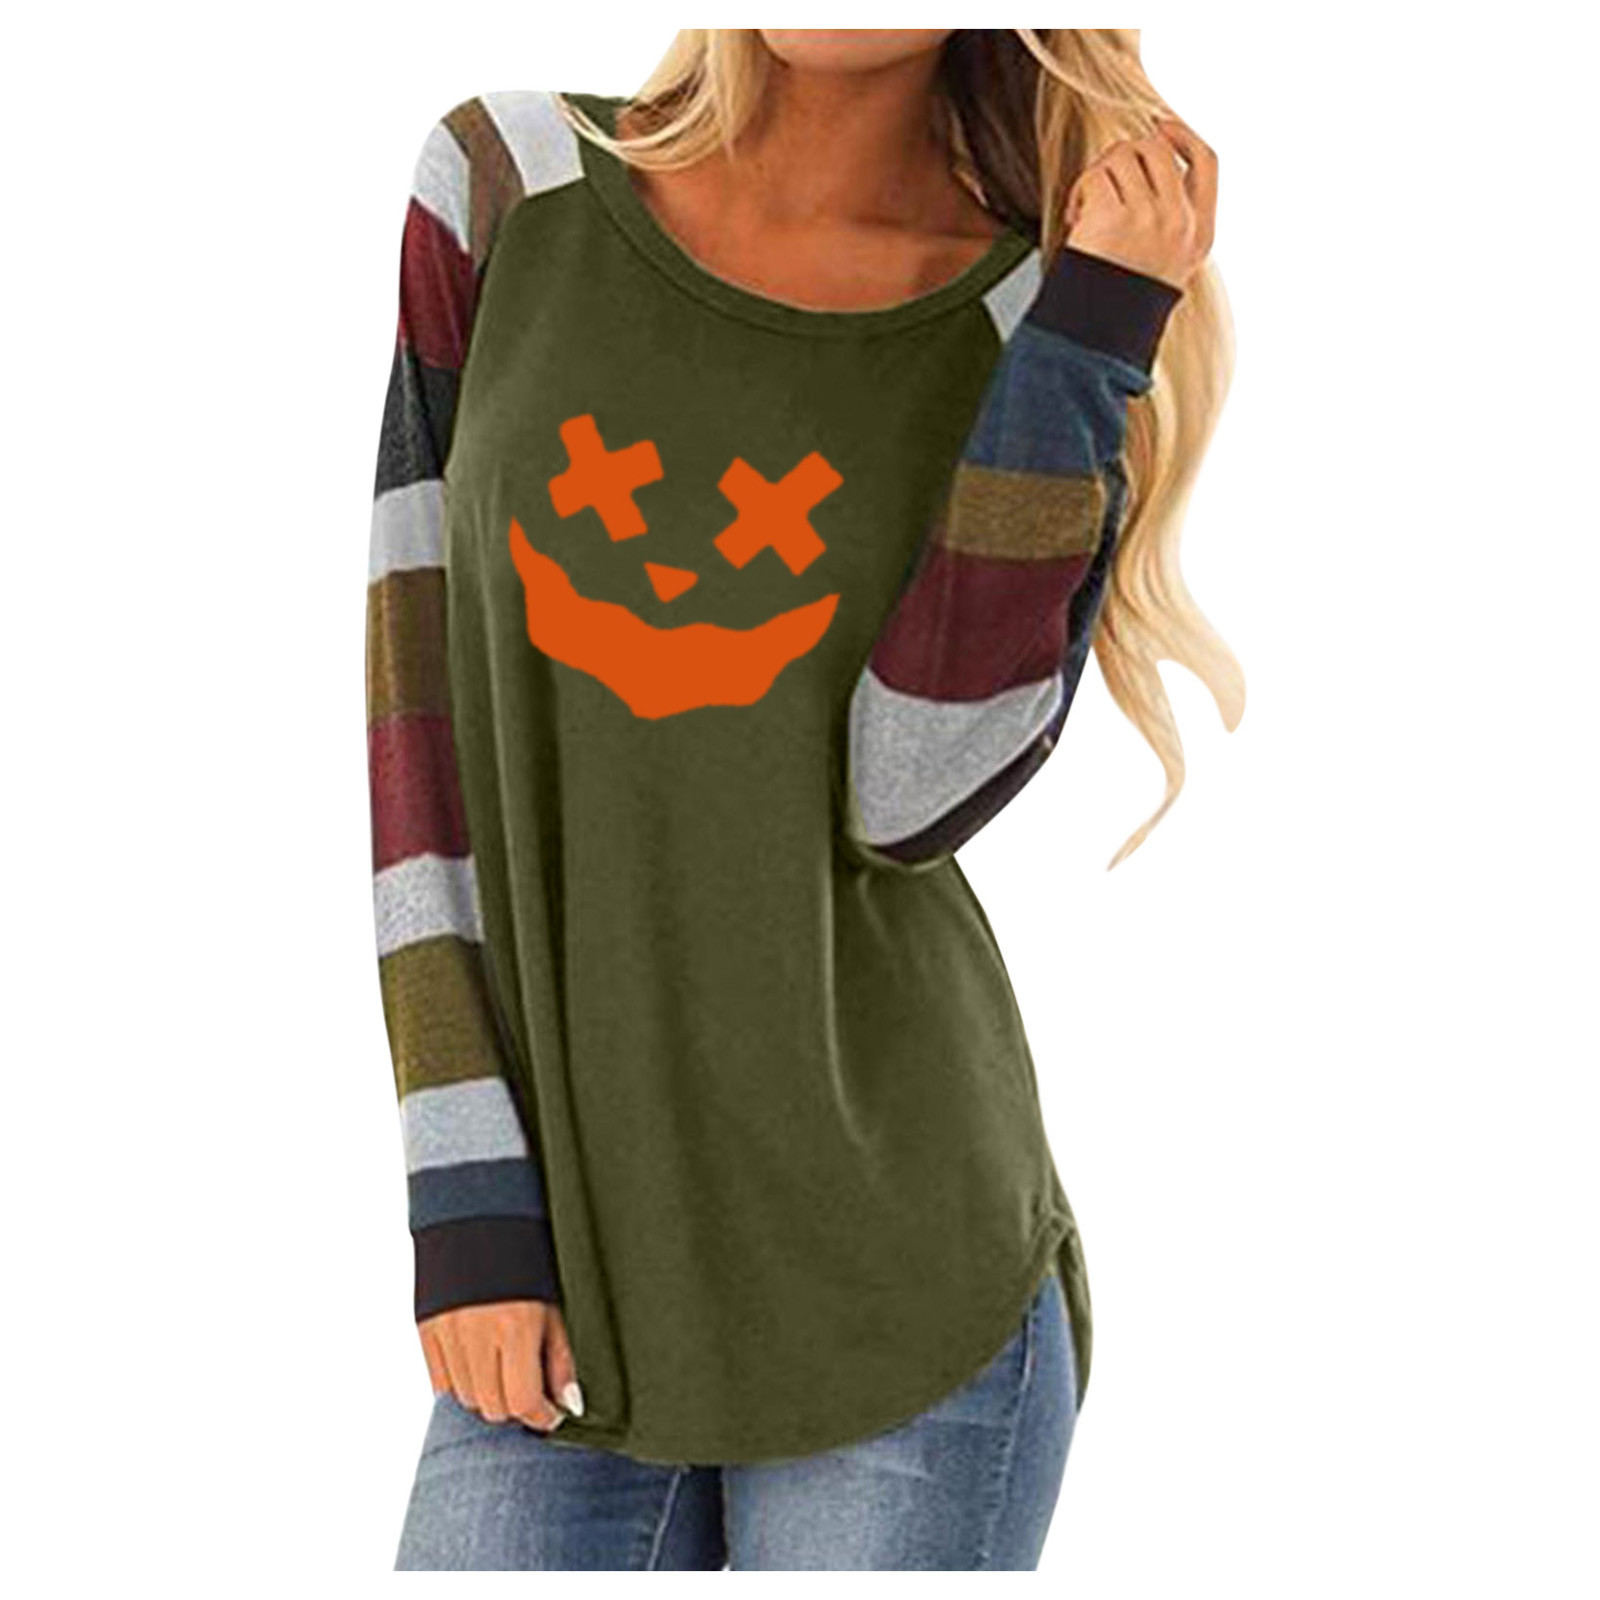 Pumpkin Print Halloween Women's T-shirt Fashion Long-sleeved Western Style Femme Top Clothes Funny Cotton O Neck Girl Clothes